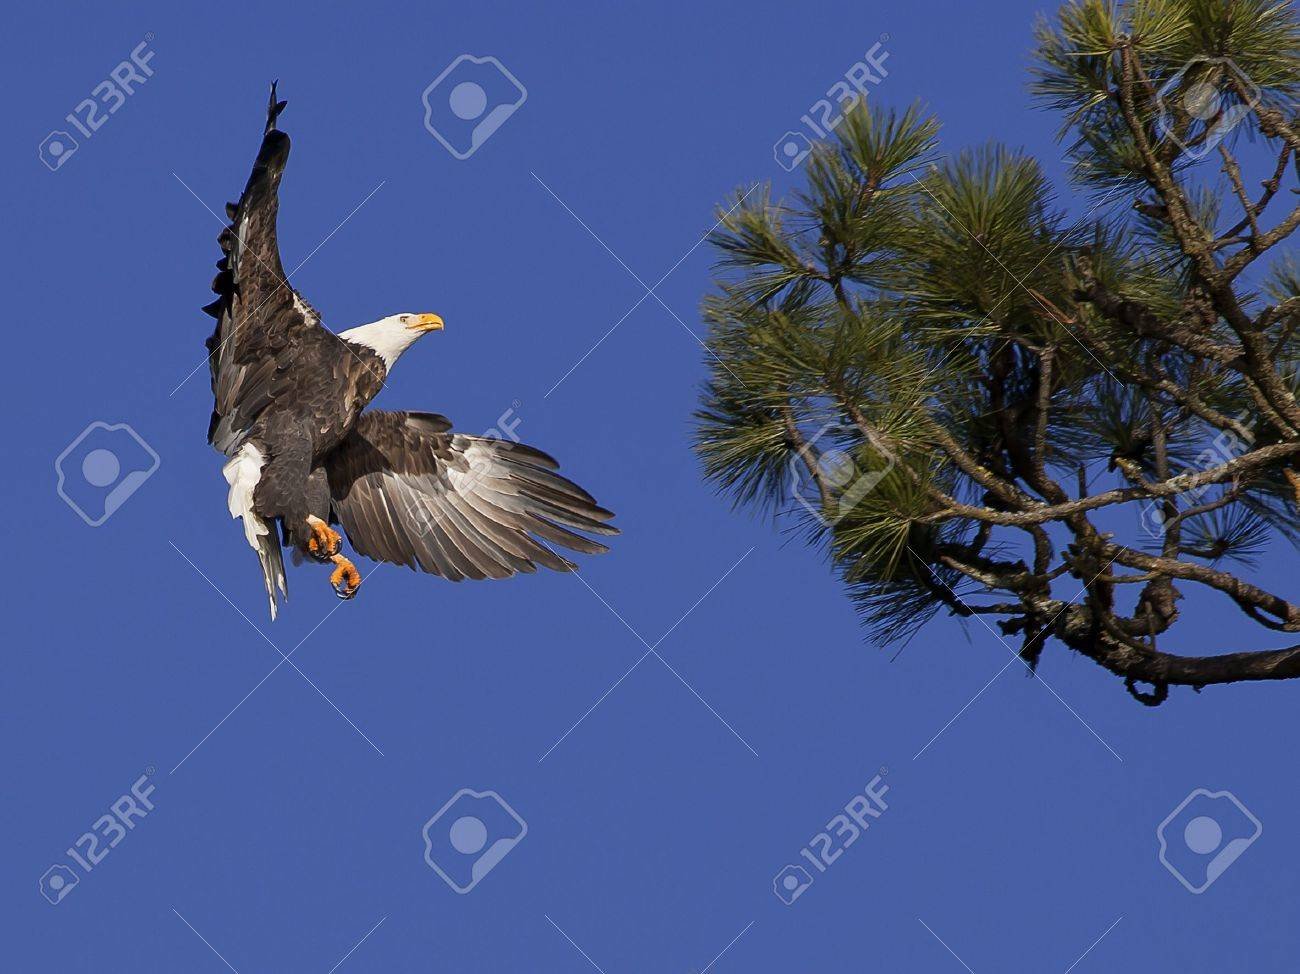 An American bald eagle prepares to land in a tree. - 8478972